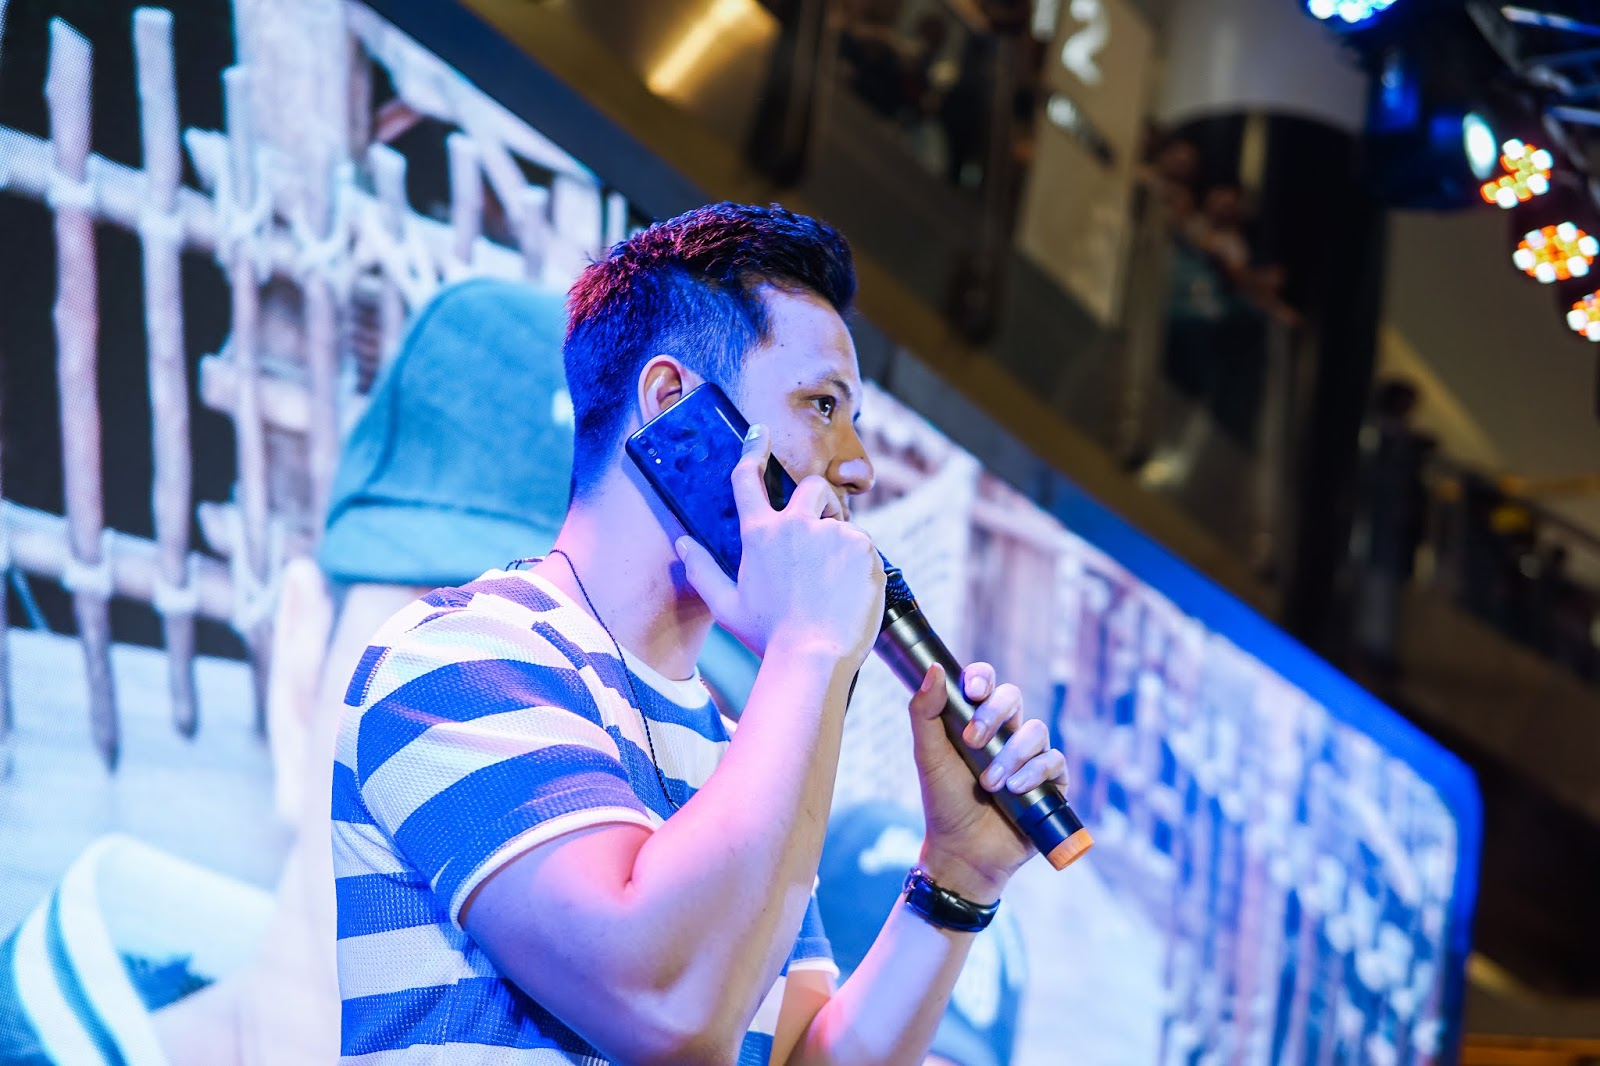 Vivo Endorser Darren Espanto Joined By Tj Monterde At The V9 Pop Filter Layer Ganda Mikrofon Bop Is An Artificial Intelligence Ai Selfie Camera With A 16 Mp 5 Dual Setup Much Like Its Predecessors V7 And